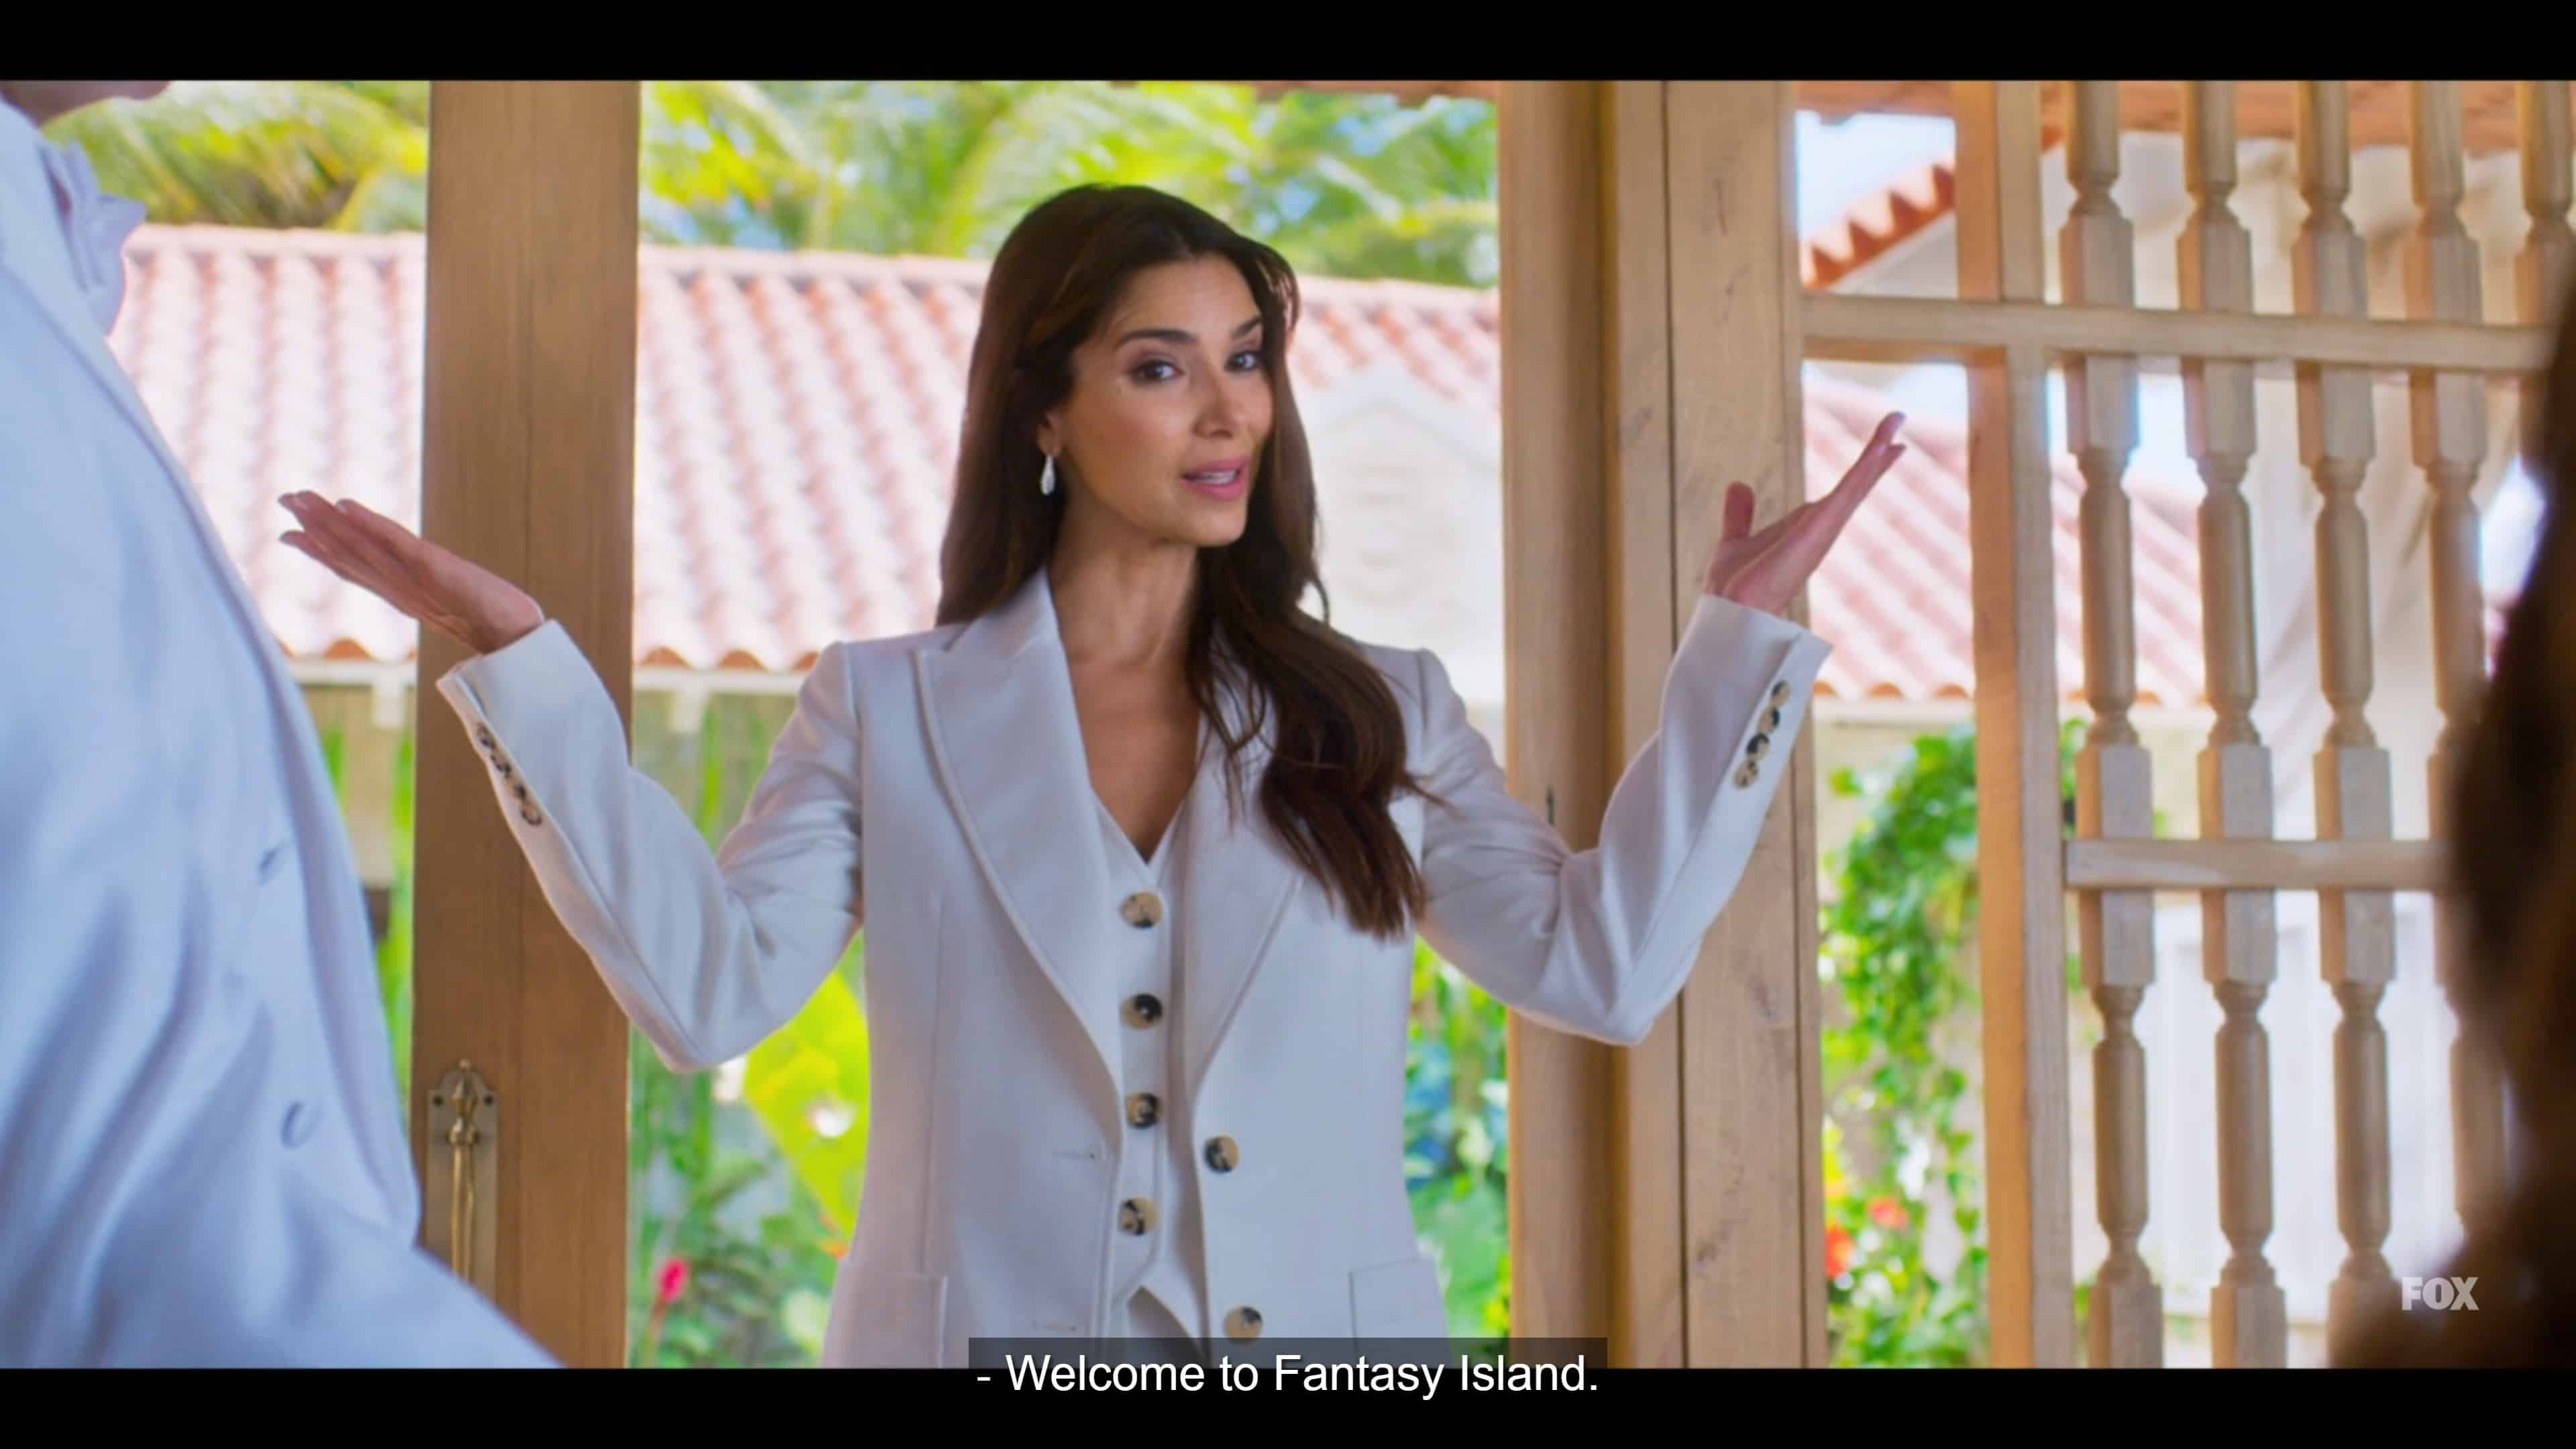 Elena (Roselyn Sanchez) welcoming her guest to Fantasy Island